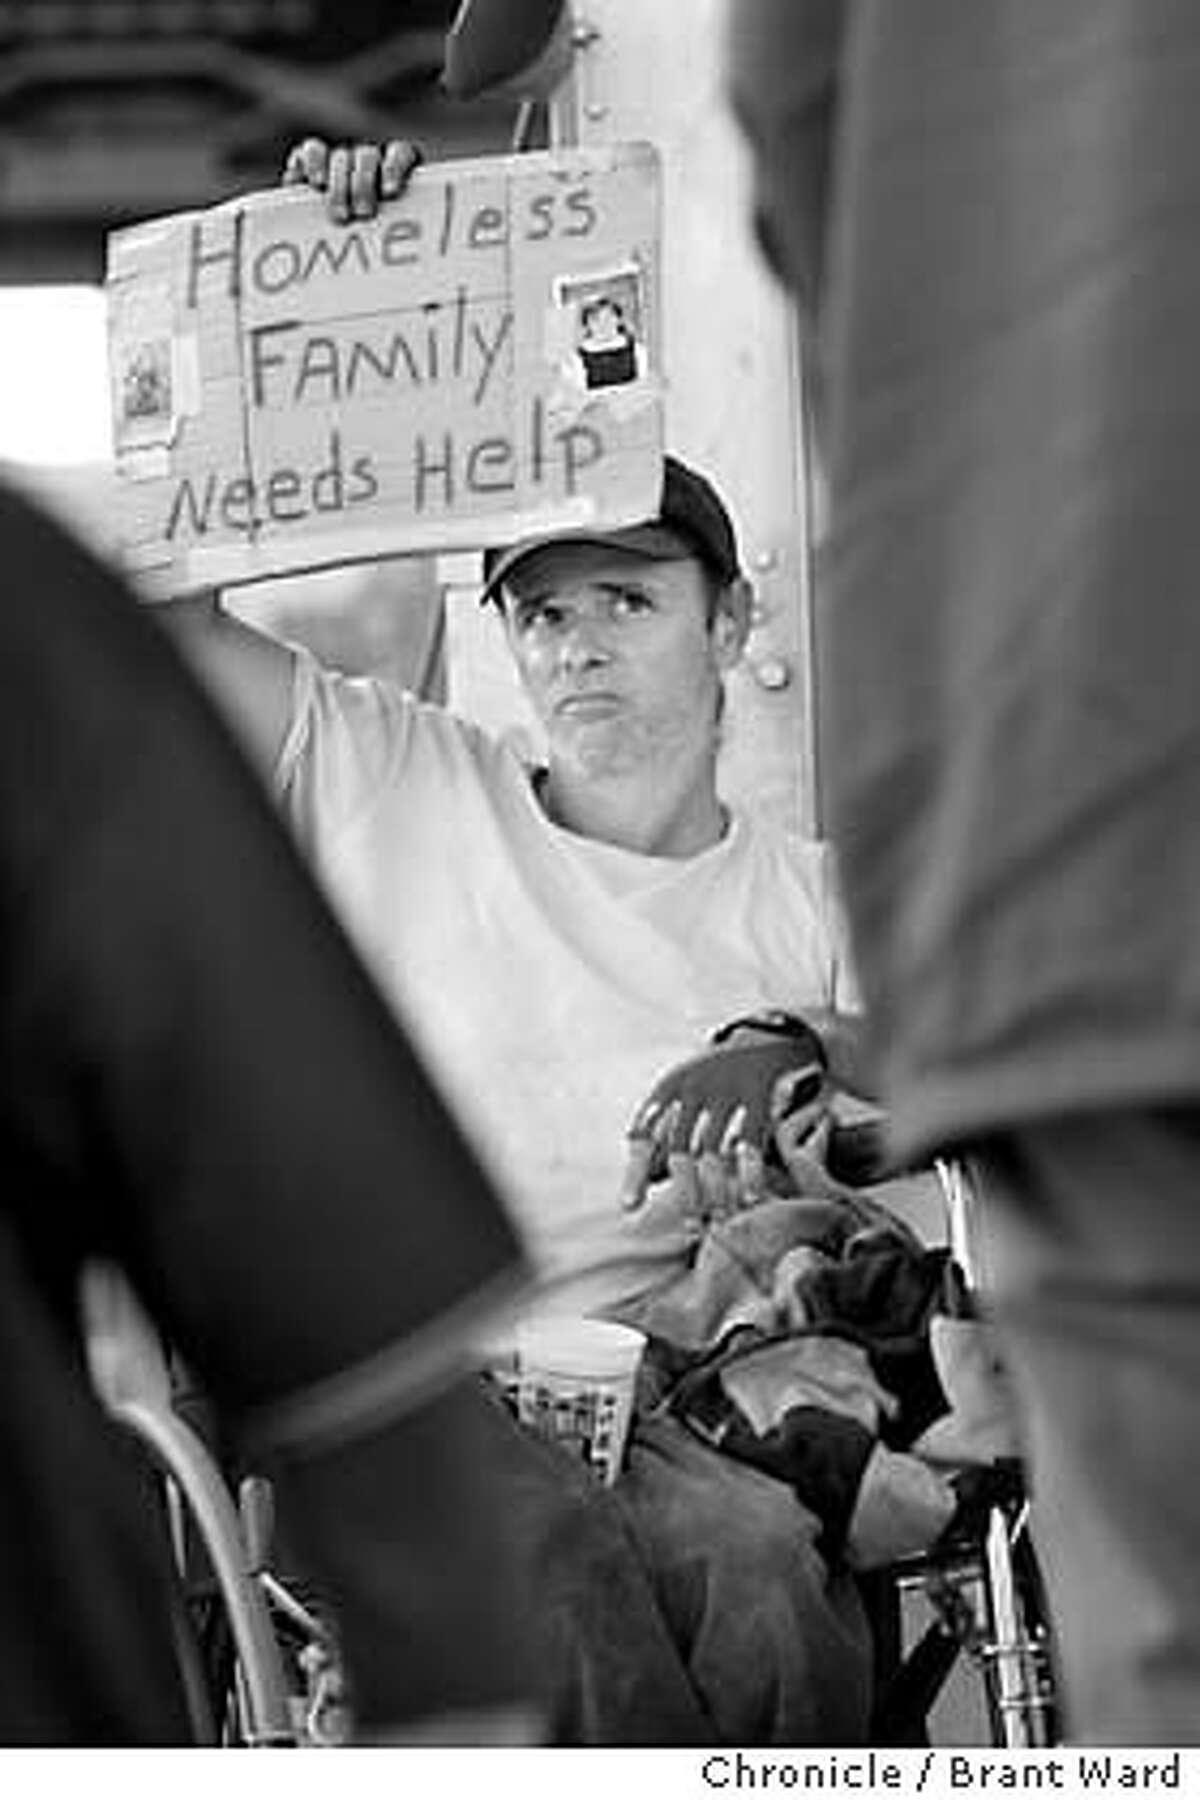 FAMILY. The Silver family, homeless, lives out of a van at the end of 24th Street in San Francisco. Tom often goes to San Francisco Giant games to panhandle...he puts his kids pictures on his sign. This night has not been kind to him. BRANT WARD / The Chronicle